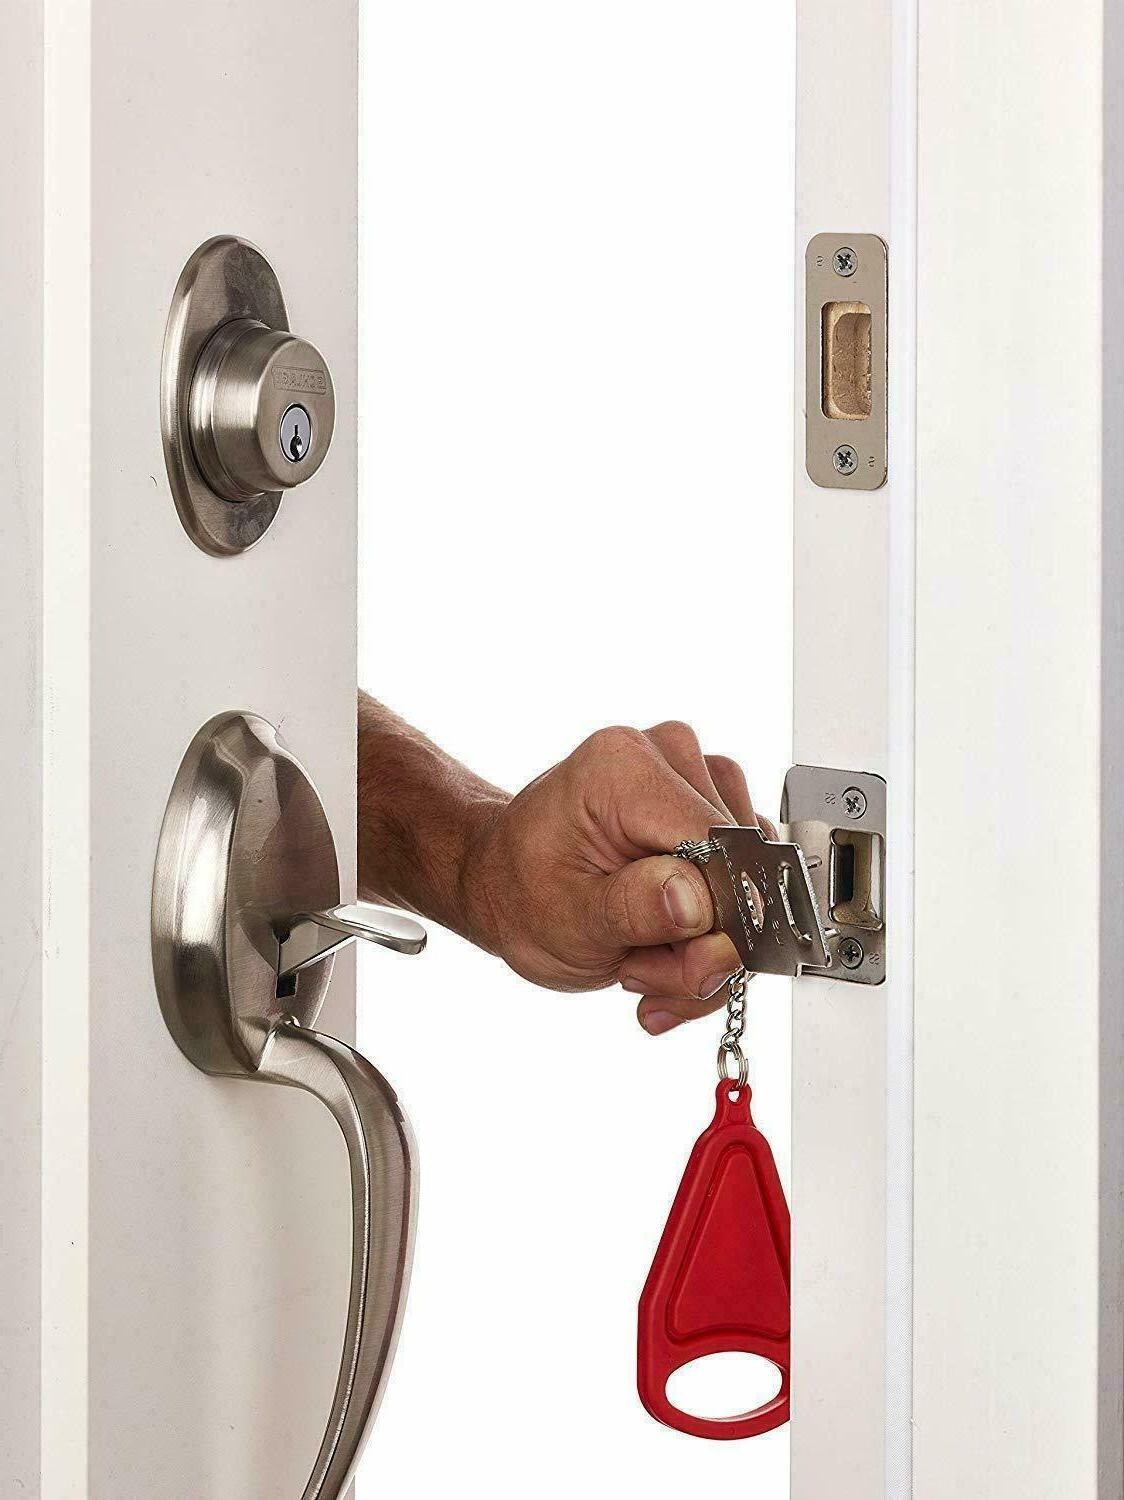 Portable Security Door Lock Hardware Safety Tool Home Privacy Travel Hotel